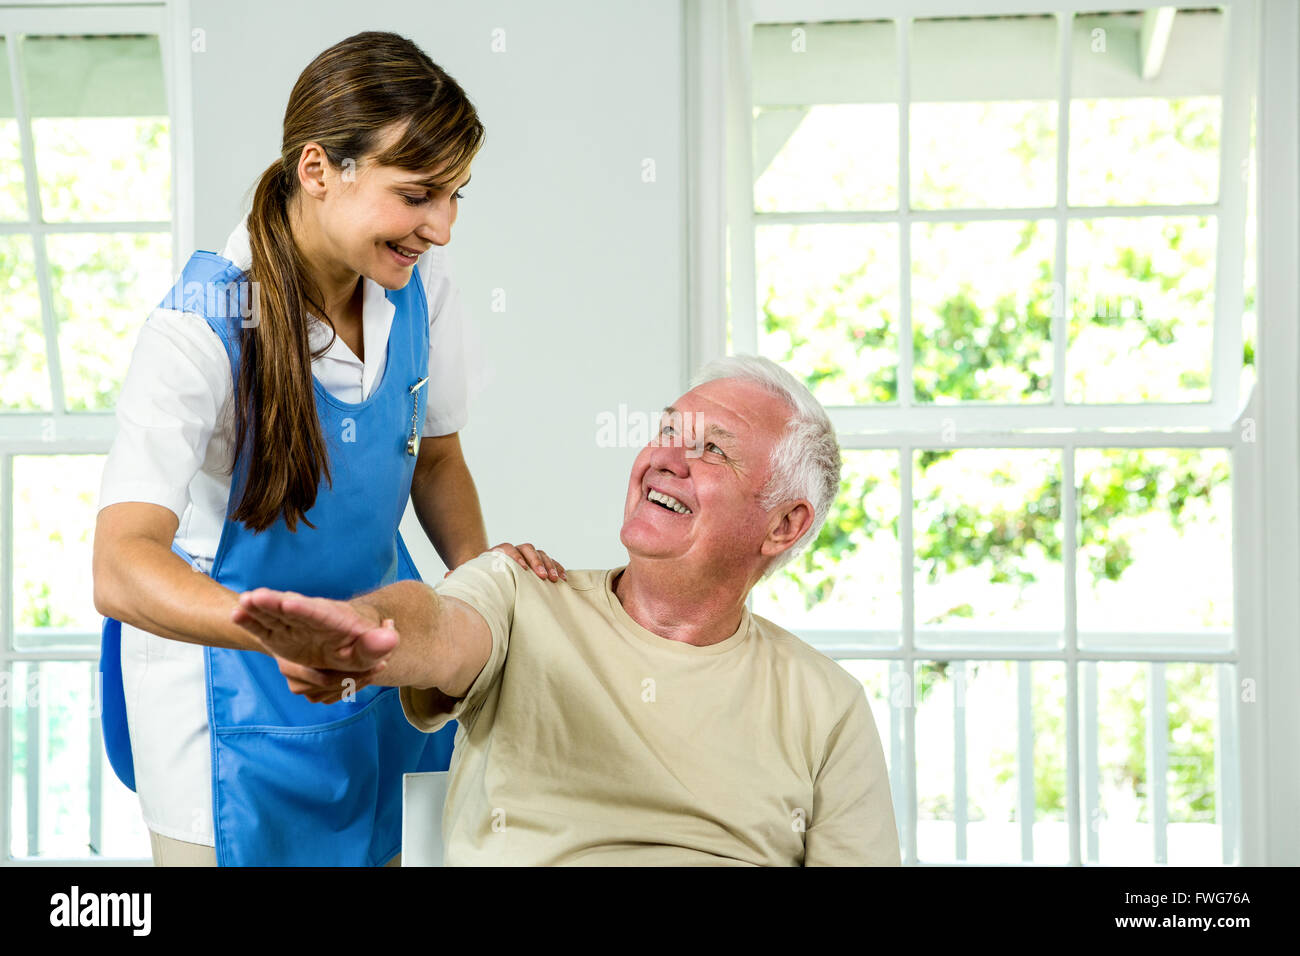 Smiling nurse assisting aged man - Stock Image